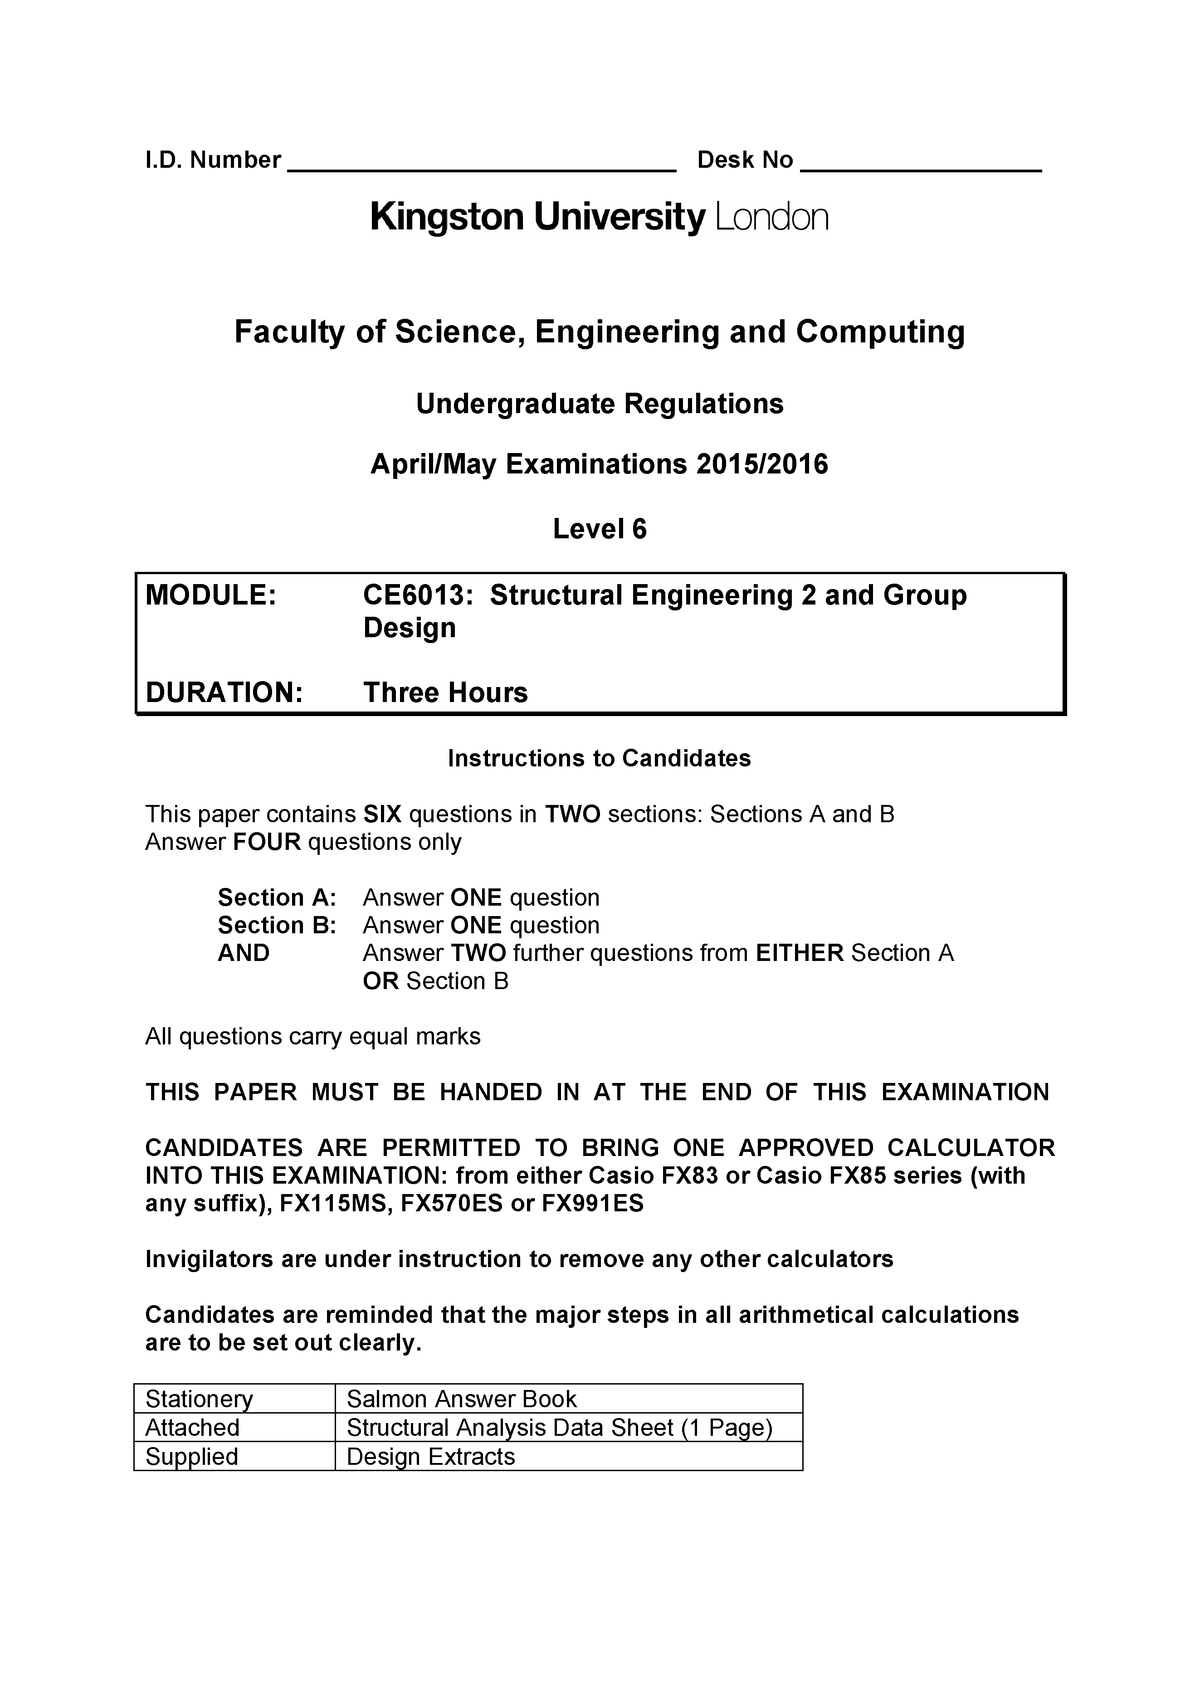 Exam 2016 - CE6013: Structural Engineering 2 and Group